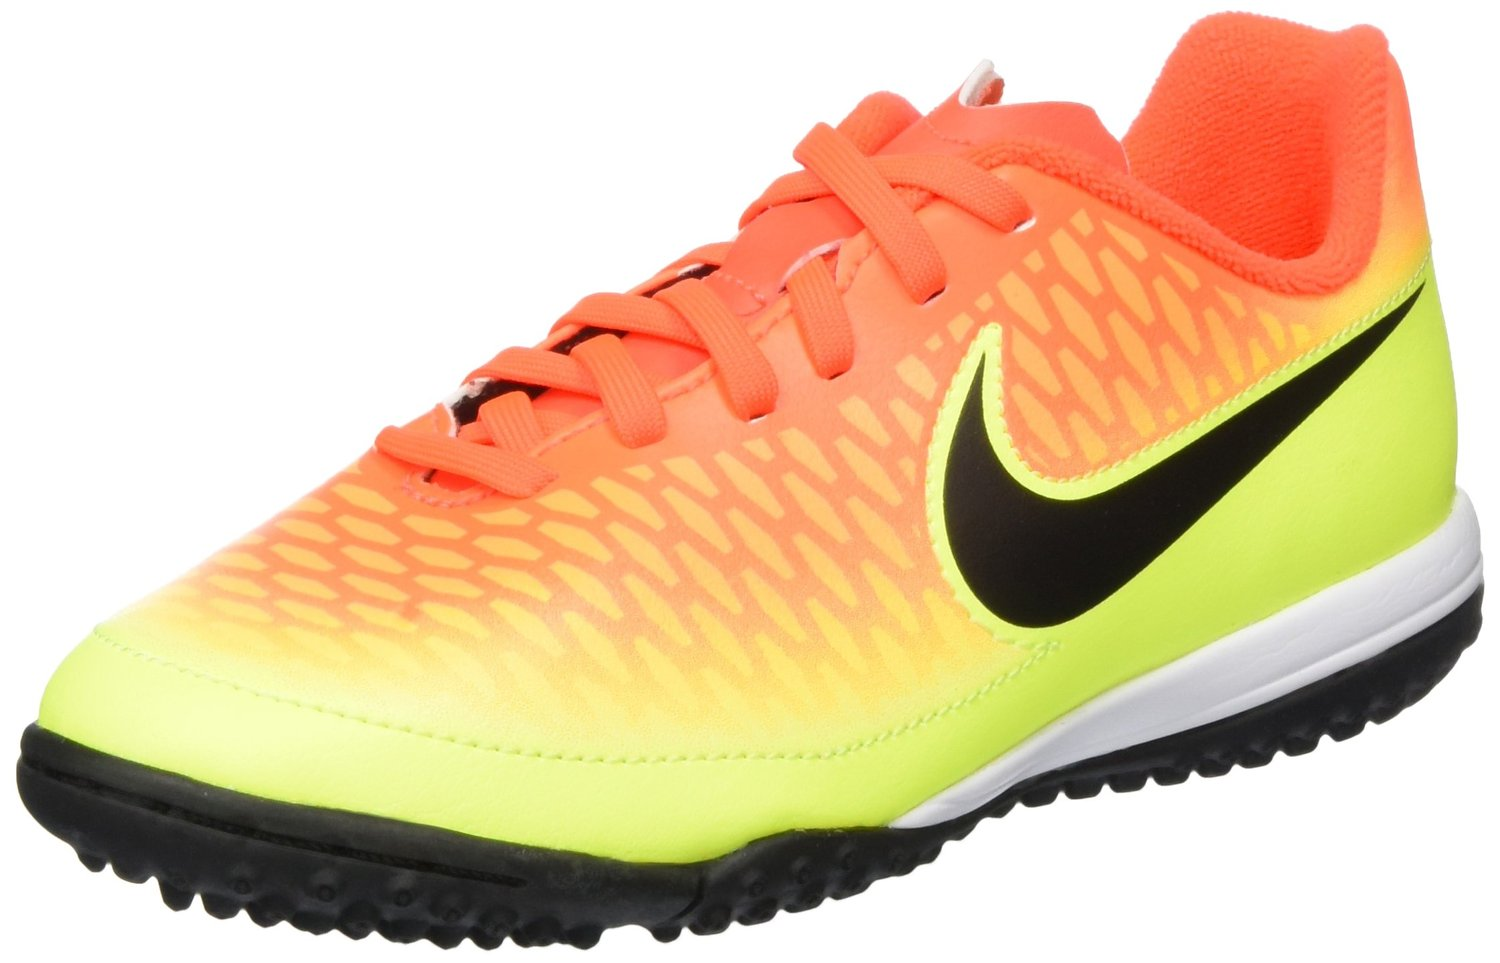 premium selection 5904b 0fbe1 Get Quotations · Nike Junior Youth Turf Soccer Shoes Magista Onda FG  Crimson Volt 651657 807 (2)